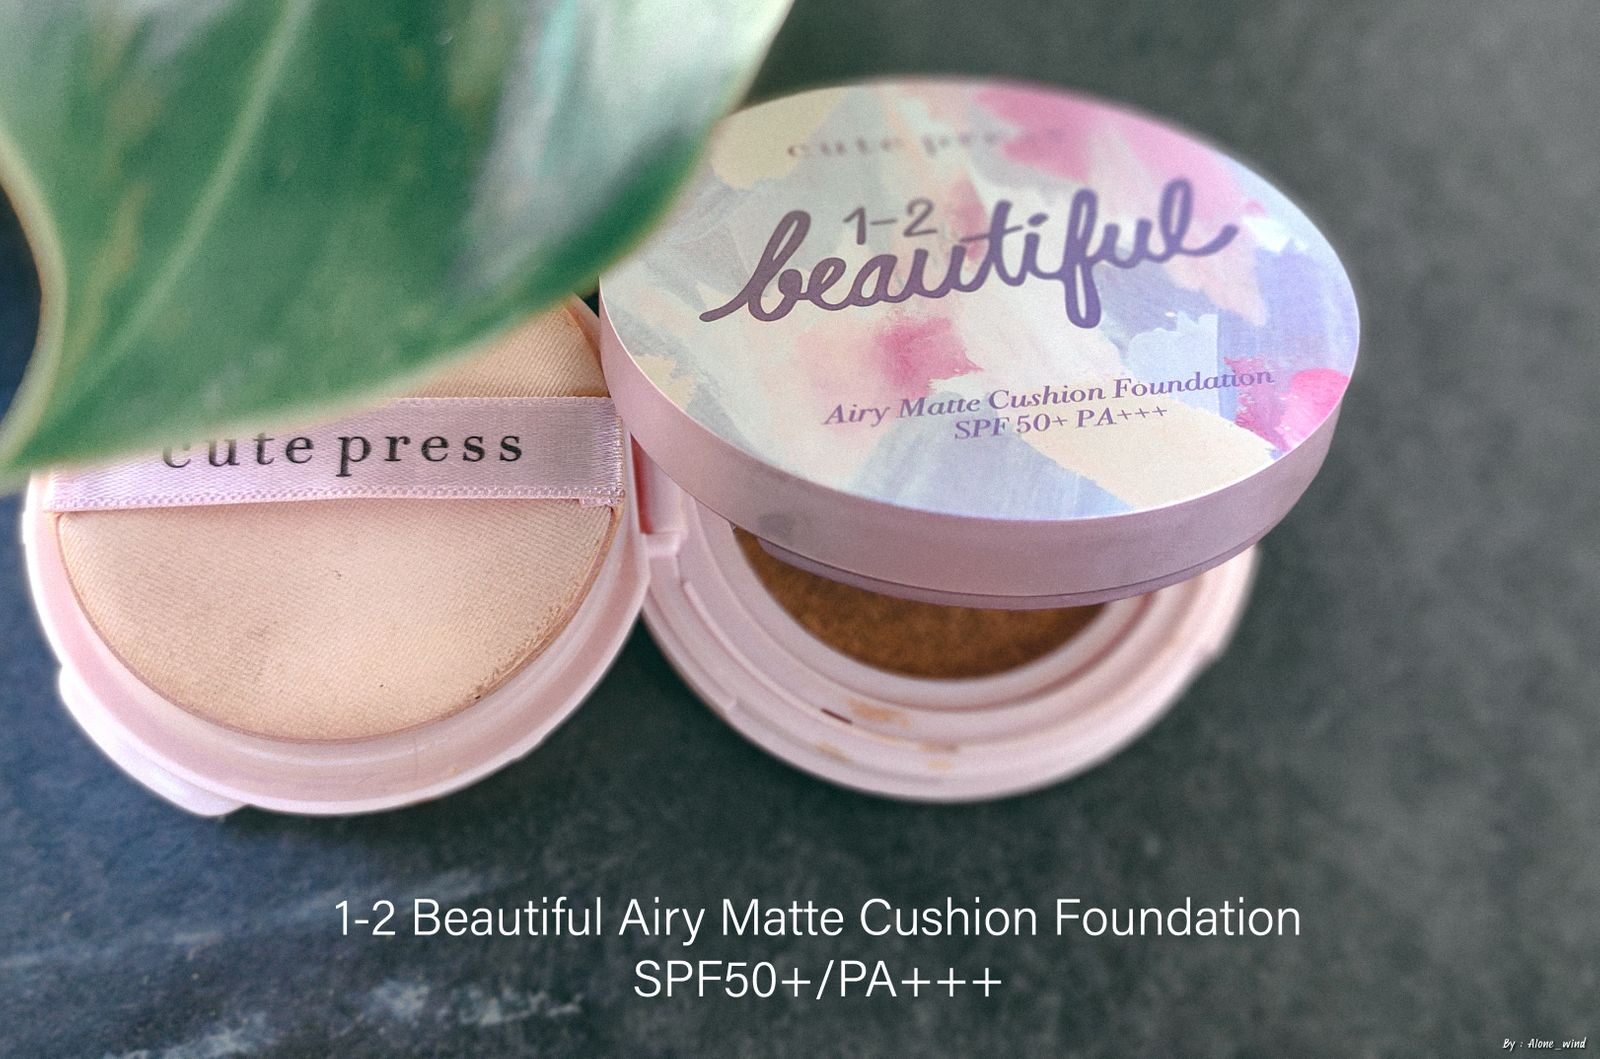 1-2 Beautiful Airy Matte Cushion Foundation SPF 50+ PA+++